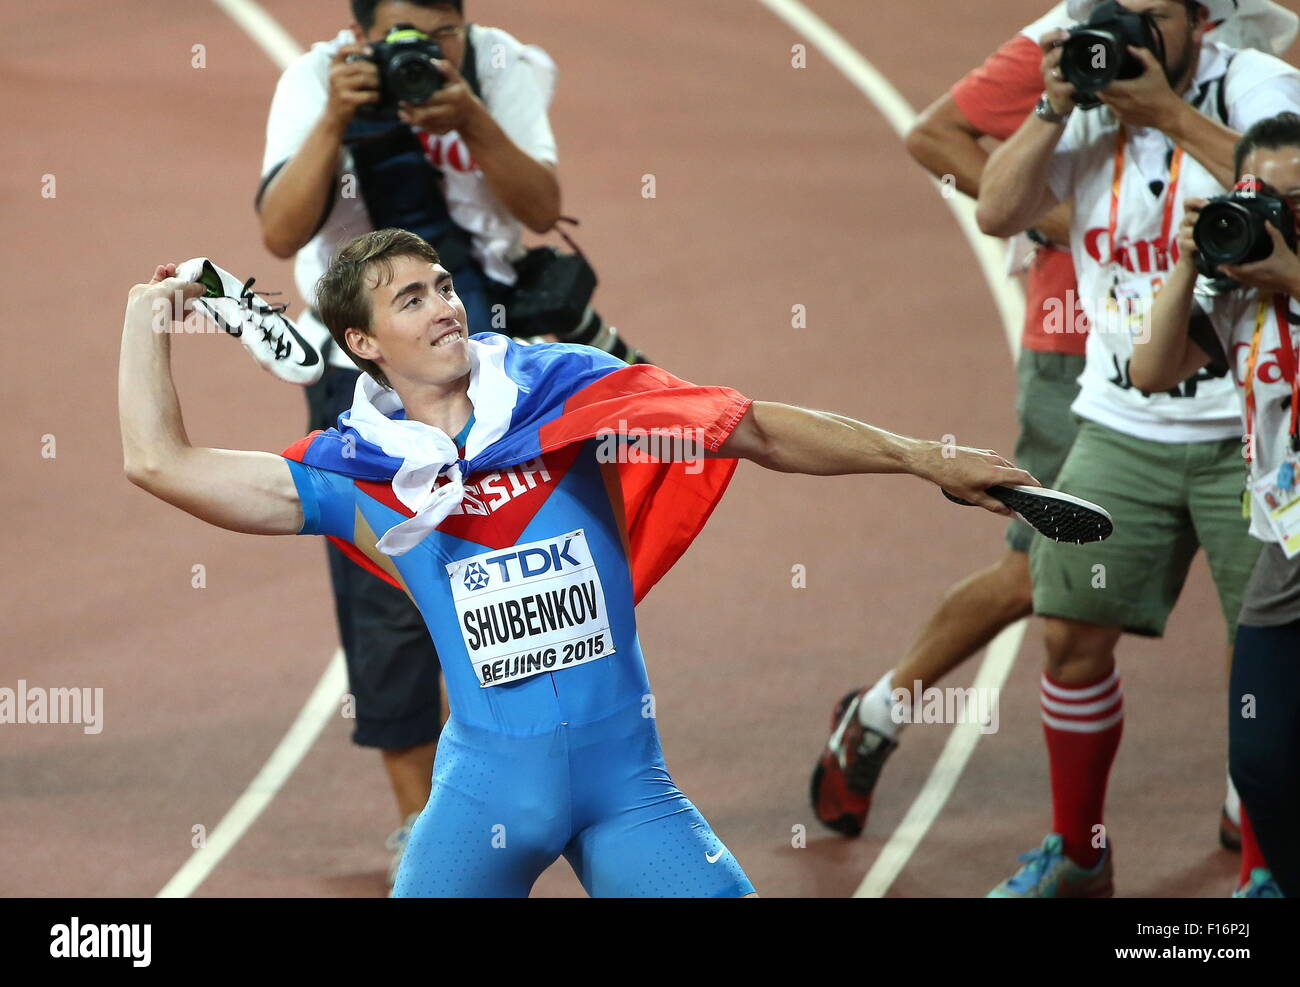 Russia s Sergey Shubenkov (front) celebrates winning a gold medal in the  men s 110m hurdles final on Day 7 of the 15th IAAF World Championships in  Athletics ... 825aa54c2ac3e